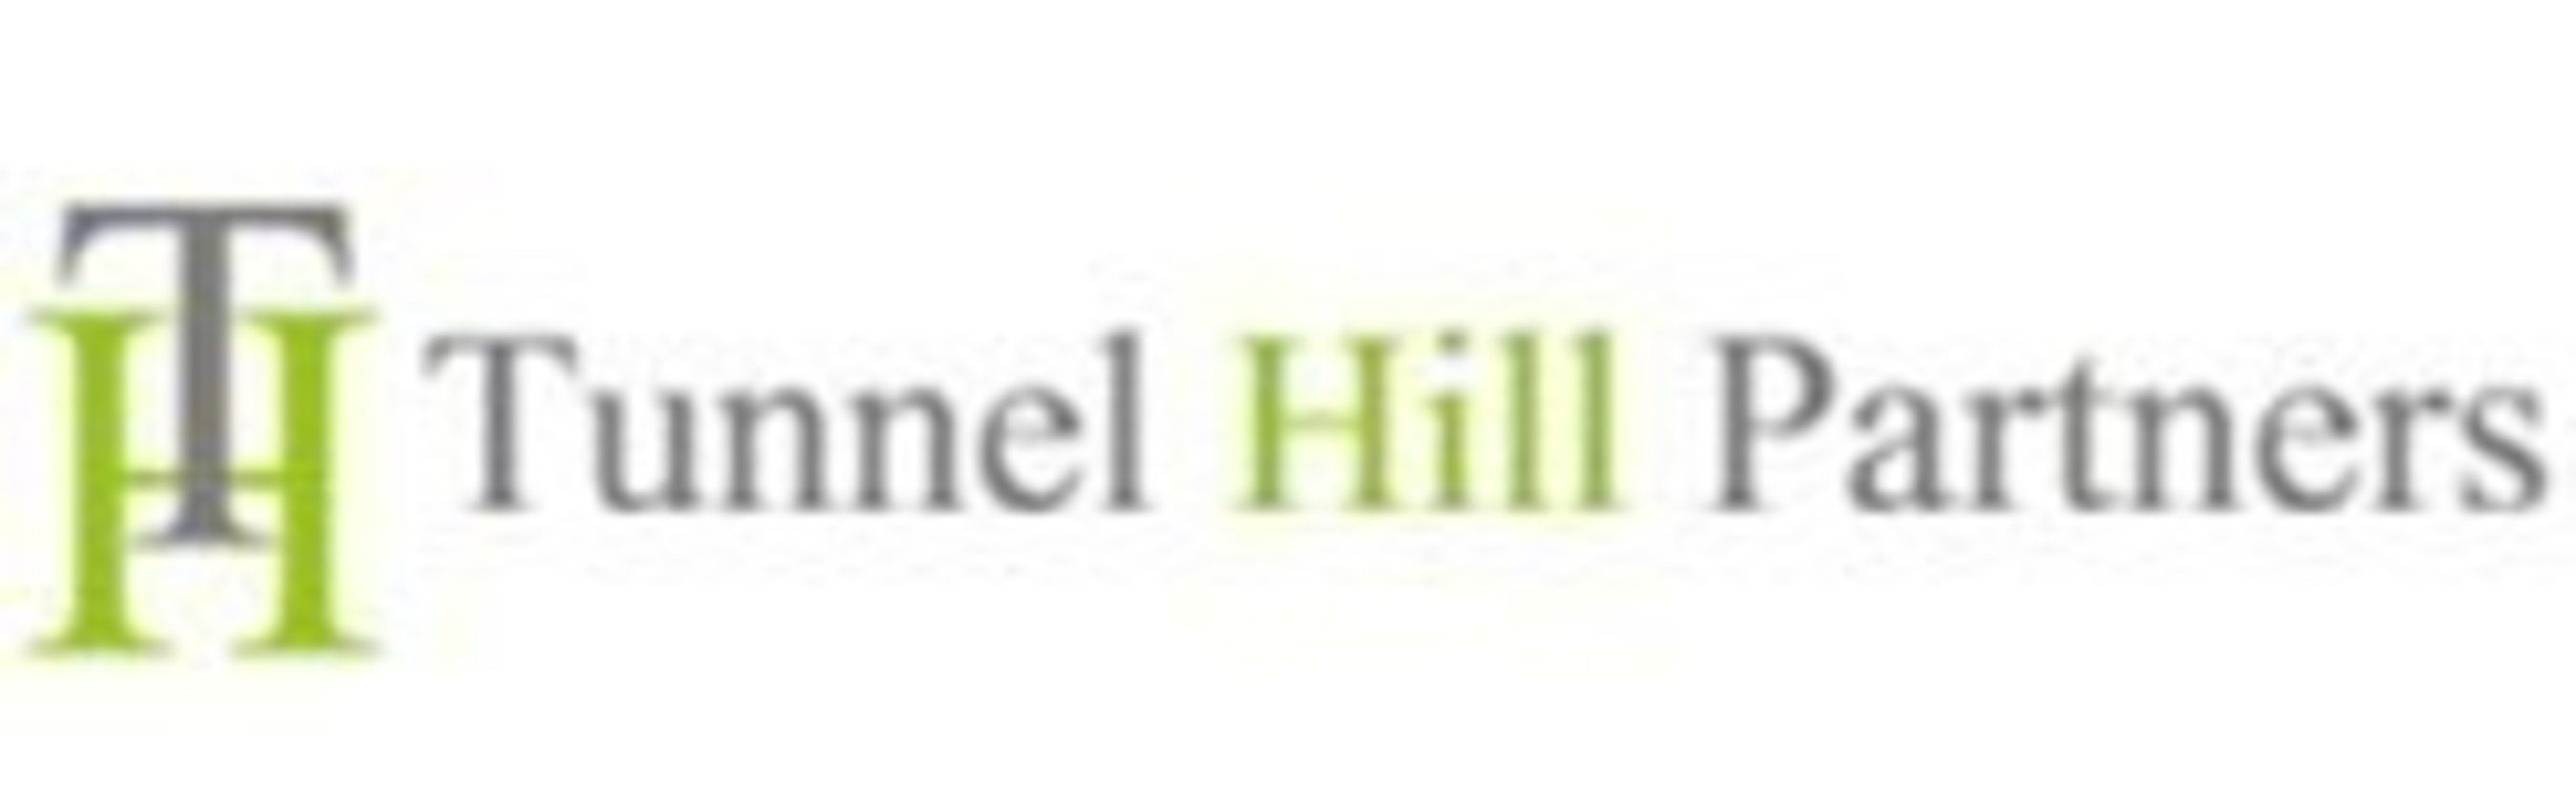 Tunnel Hill Partners